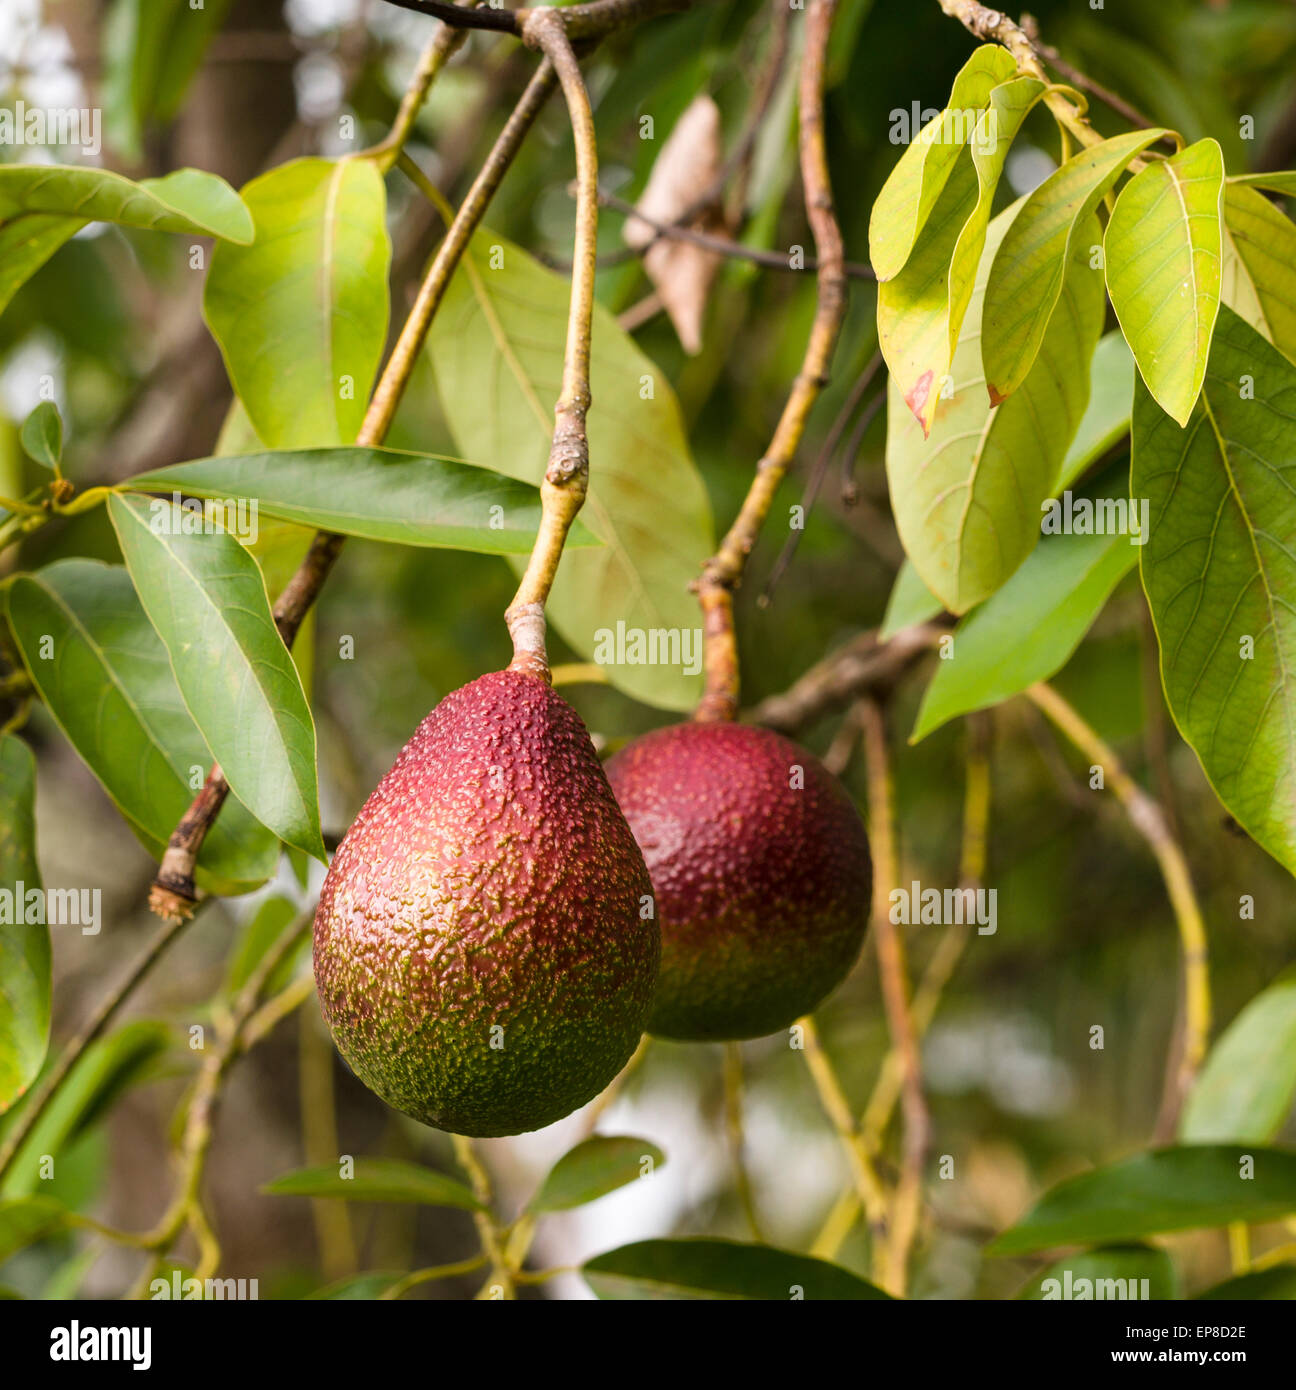 Ripe Red Avocado Fruit. Two lush ripe rare red avocados on the tree surrounded by leaves. - Stock Image